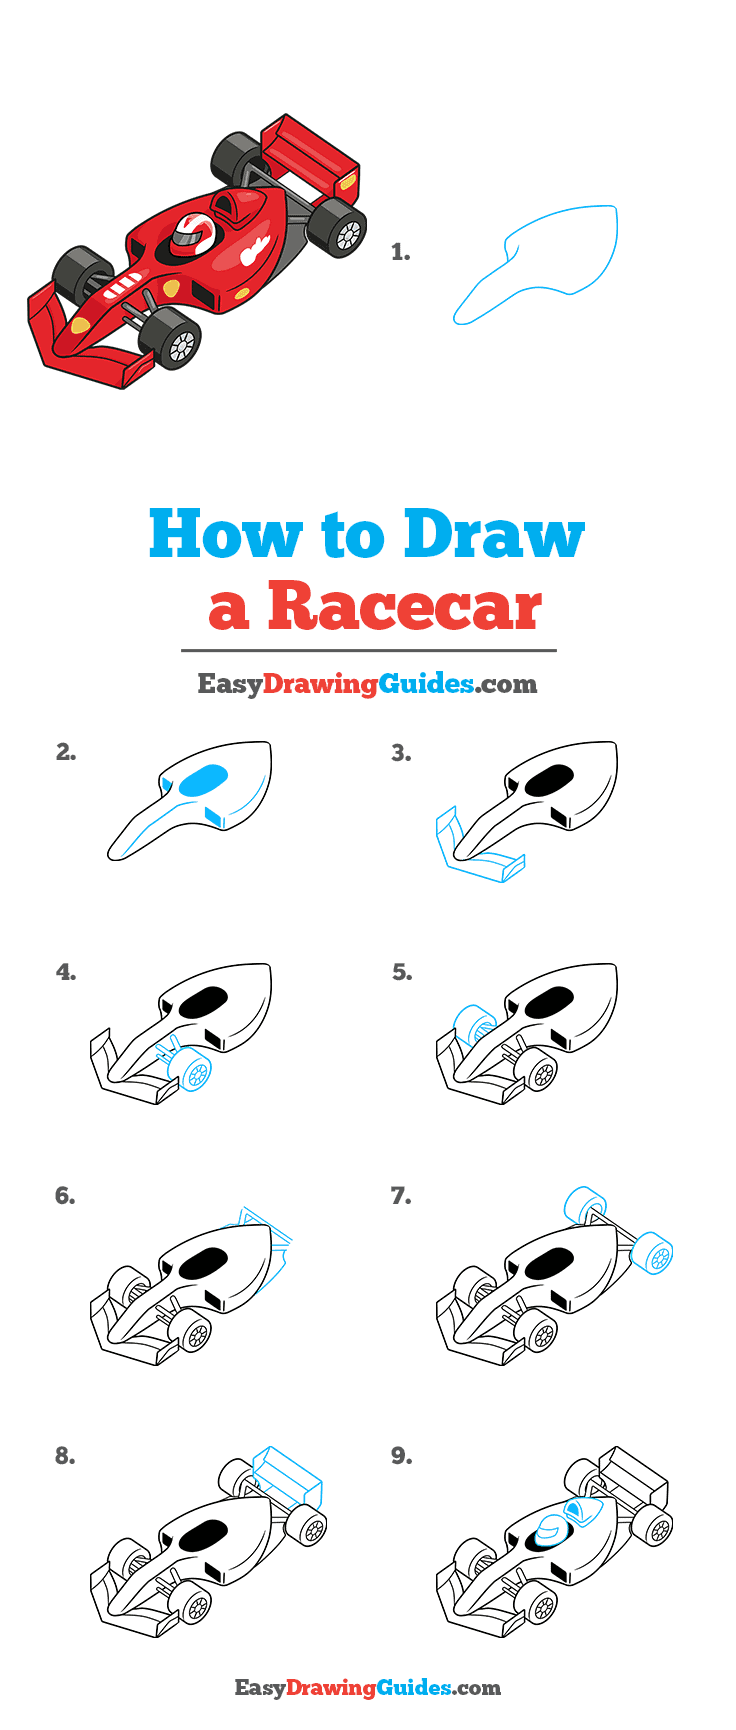 How to Draw Racecar